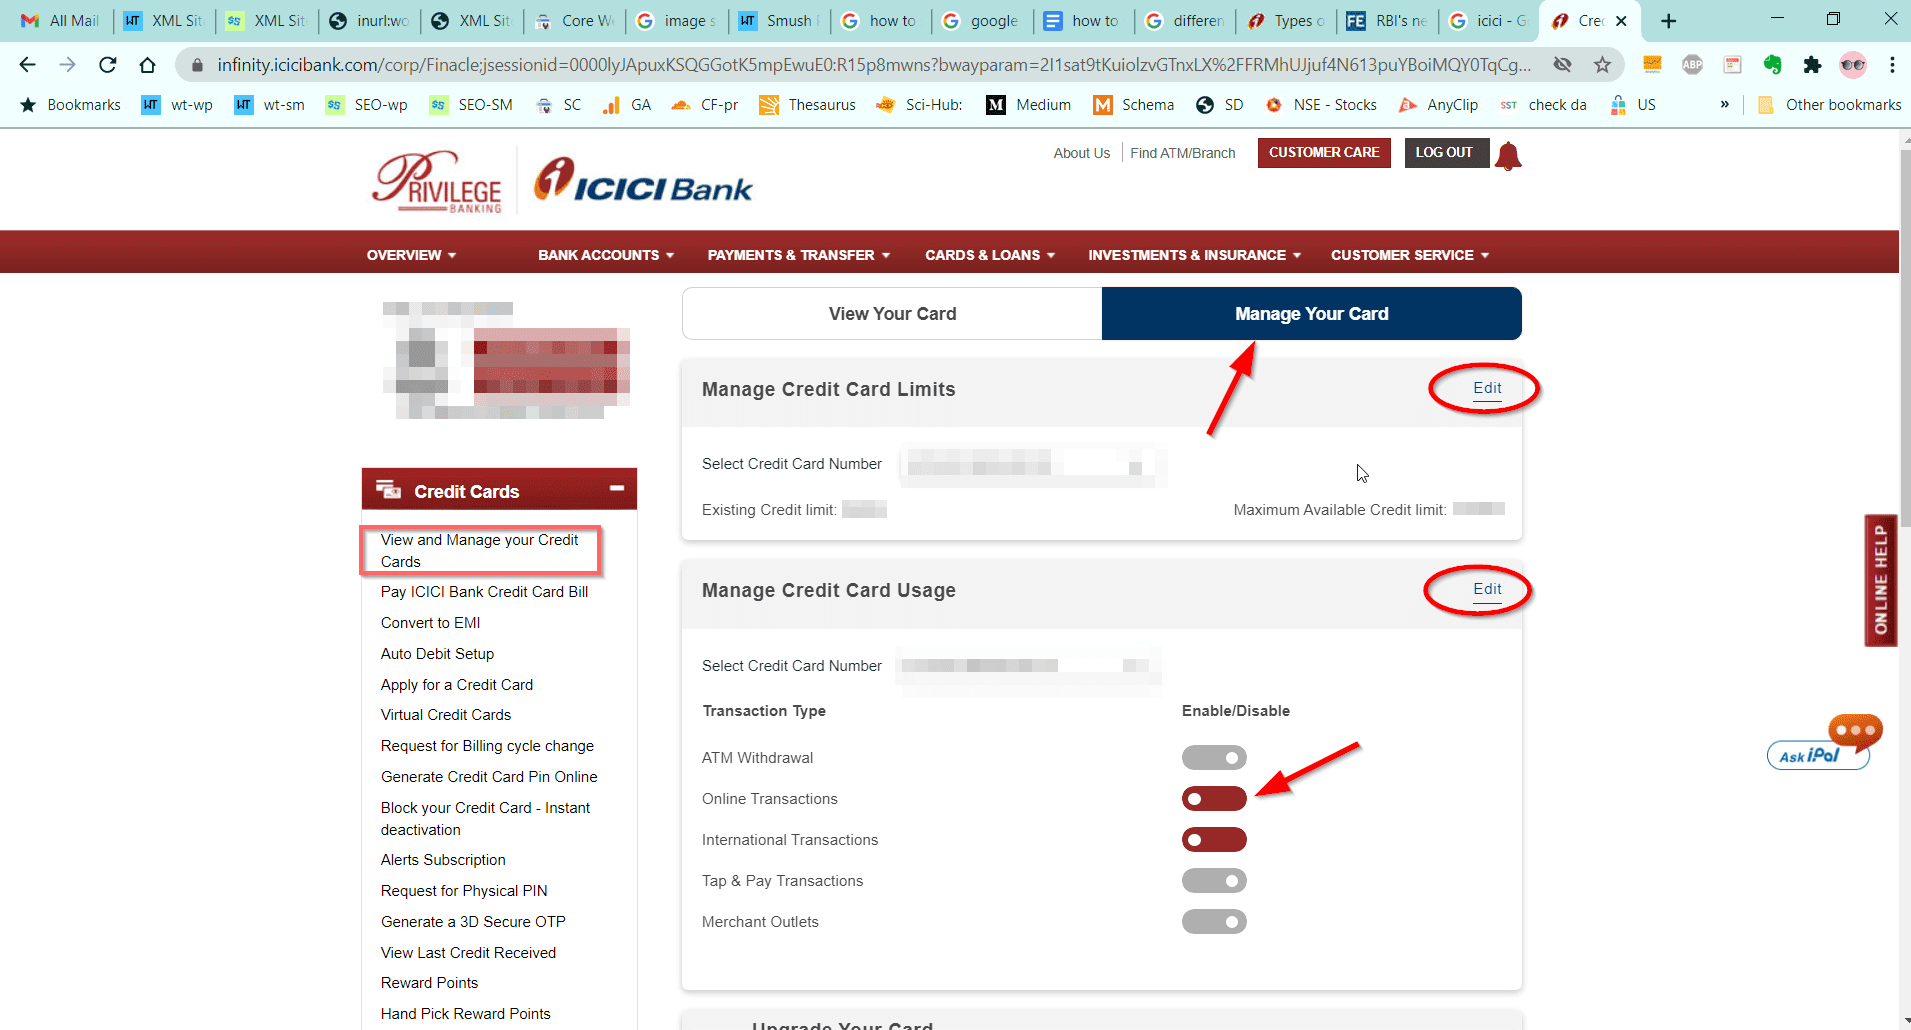 http://server.digimetriq.com/wp-content/uploads/2020/12/1608627888_536_How-to-Set-Transaction-Limit-in-ICICI-Credit-Card.png